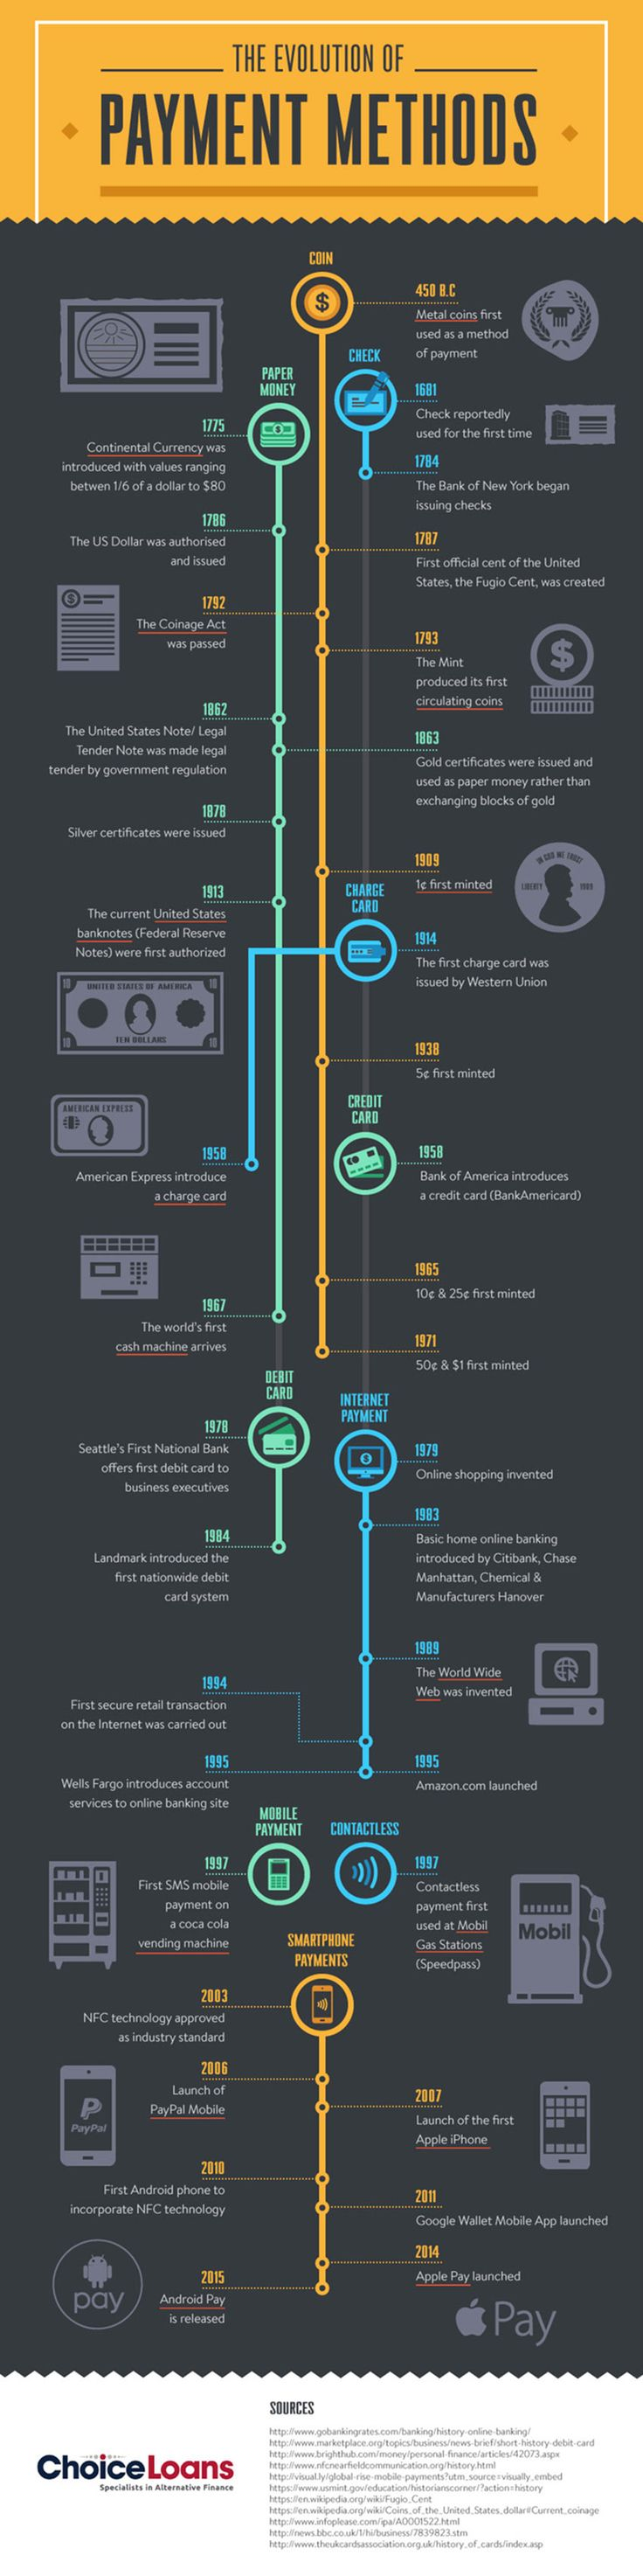 The evolution of payment methods infographic credit